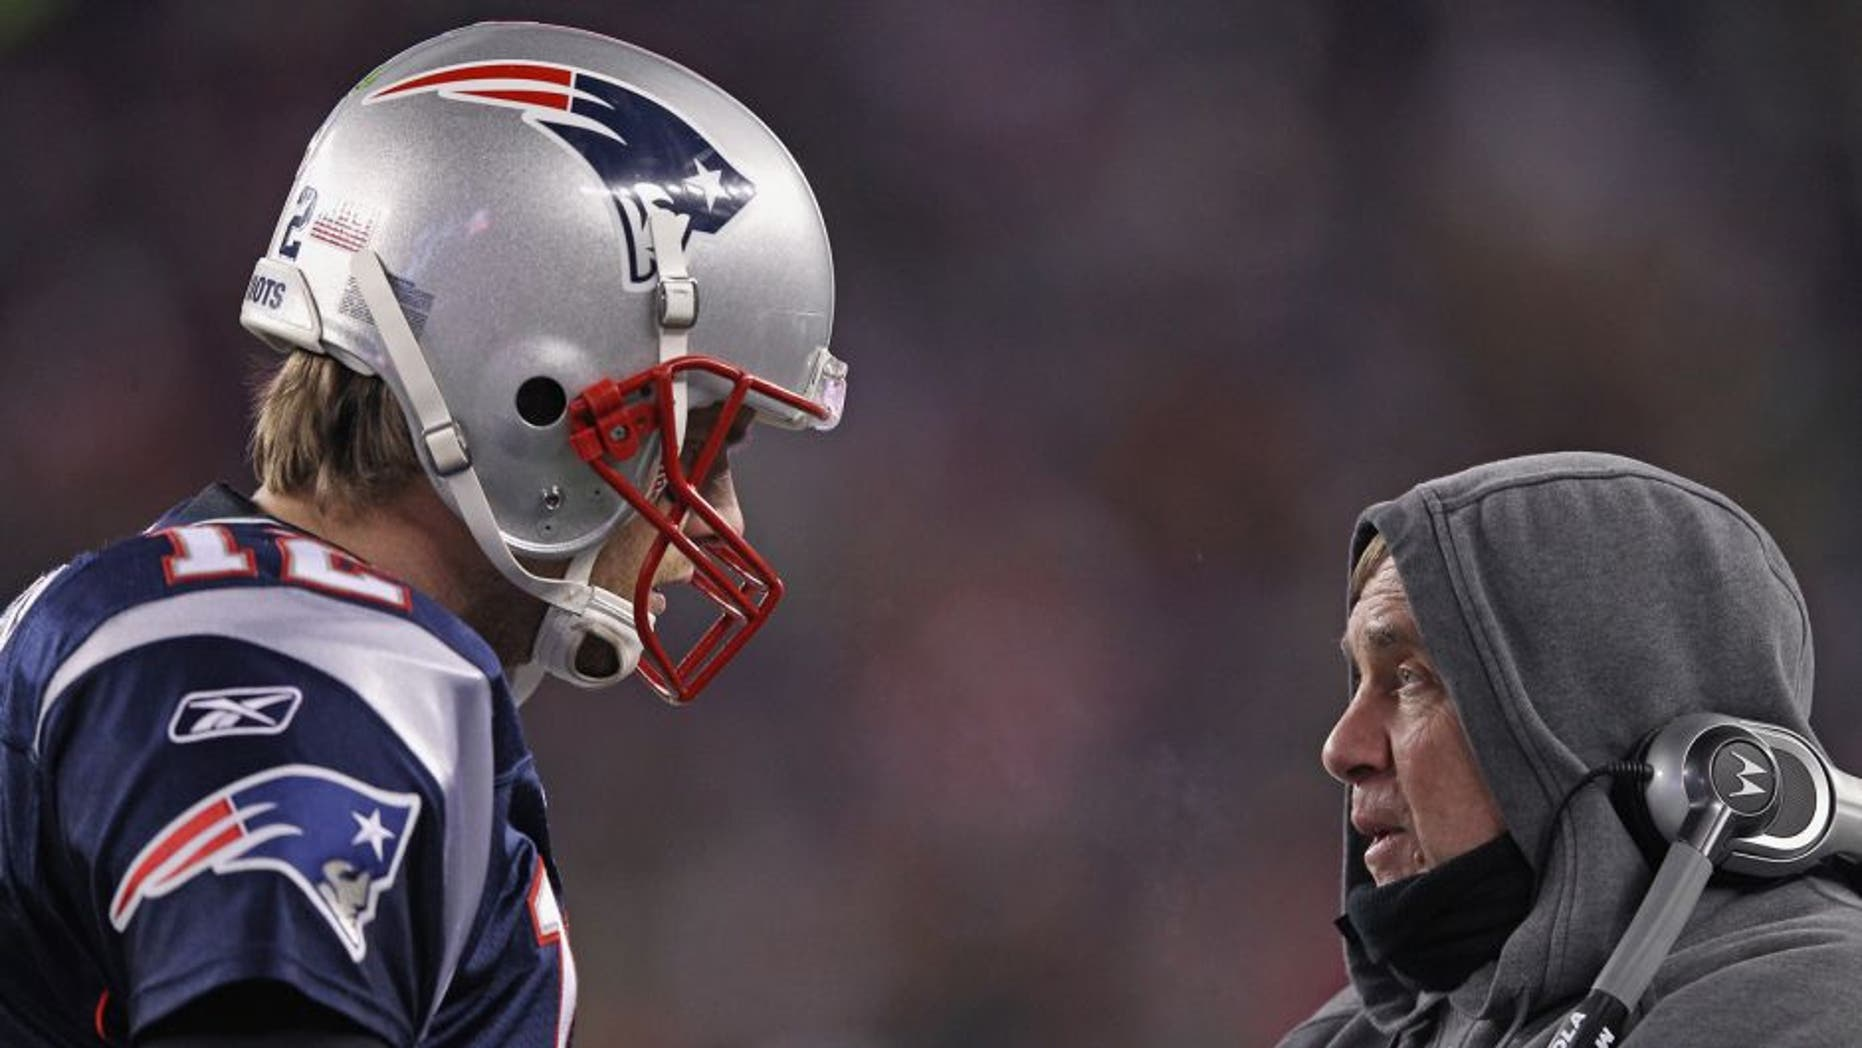 FOXBORO, MA - JANUARY 14: (L-R) Tom Brady #12 of the New England Patriots talks with head coach Bill Belichick on the sideline against the Denver Broncos during their AFC Divisional Playoff Game at Gillette Stadium on January 14, 2012 in Foxboro, Massachusetts. (Photo by Elsa/Getty Images)